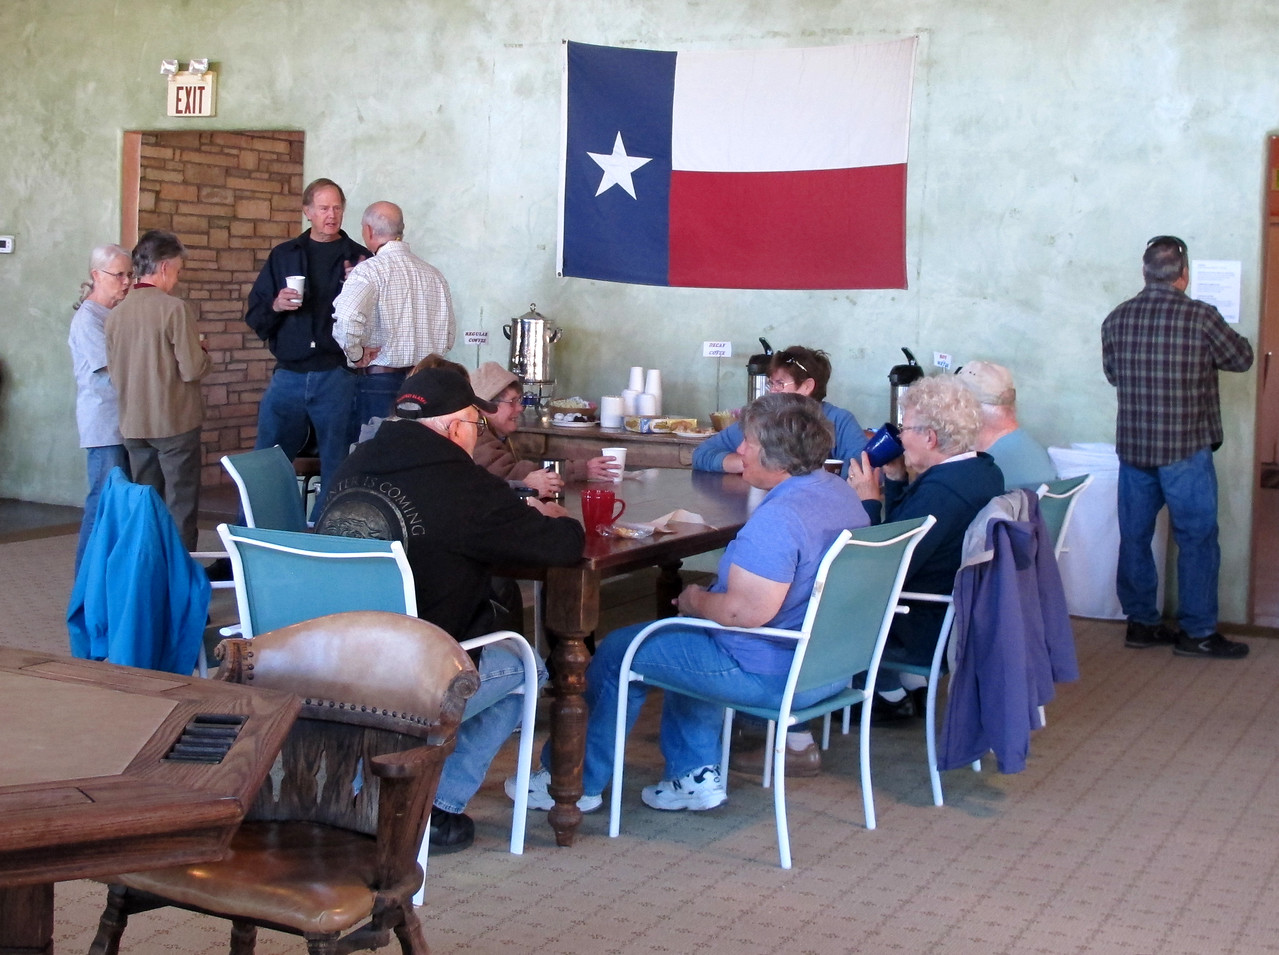 Earlybirds have  morning coffee with their Casita peeps. Some of them brought baked goods to share.